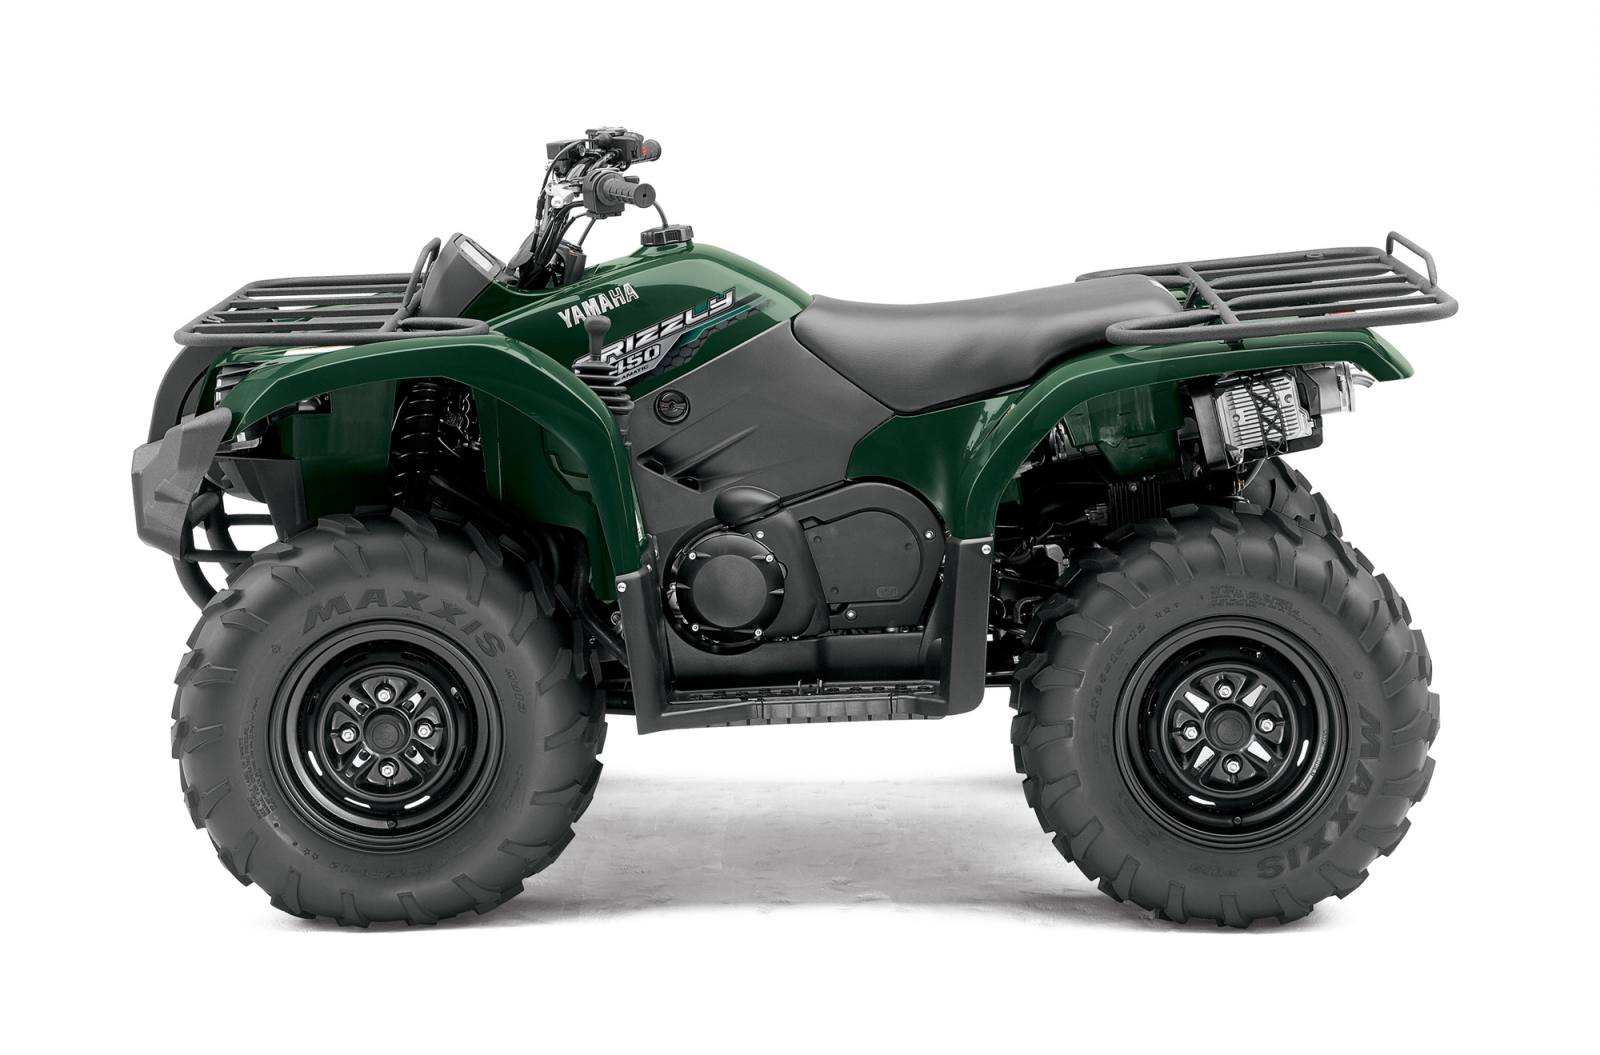 Yamaha Grizzly 450 >> 2014 Yamaha Grizzly 450 Auto 4x4 For Sale In Martinsville In Flat